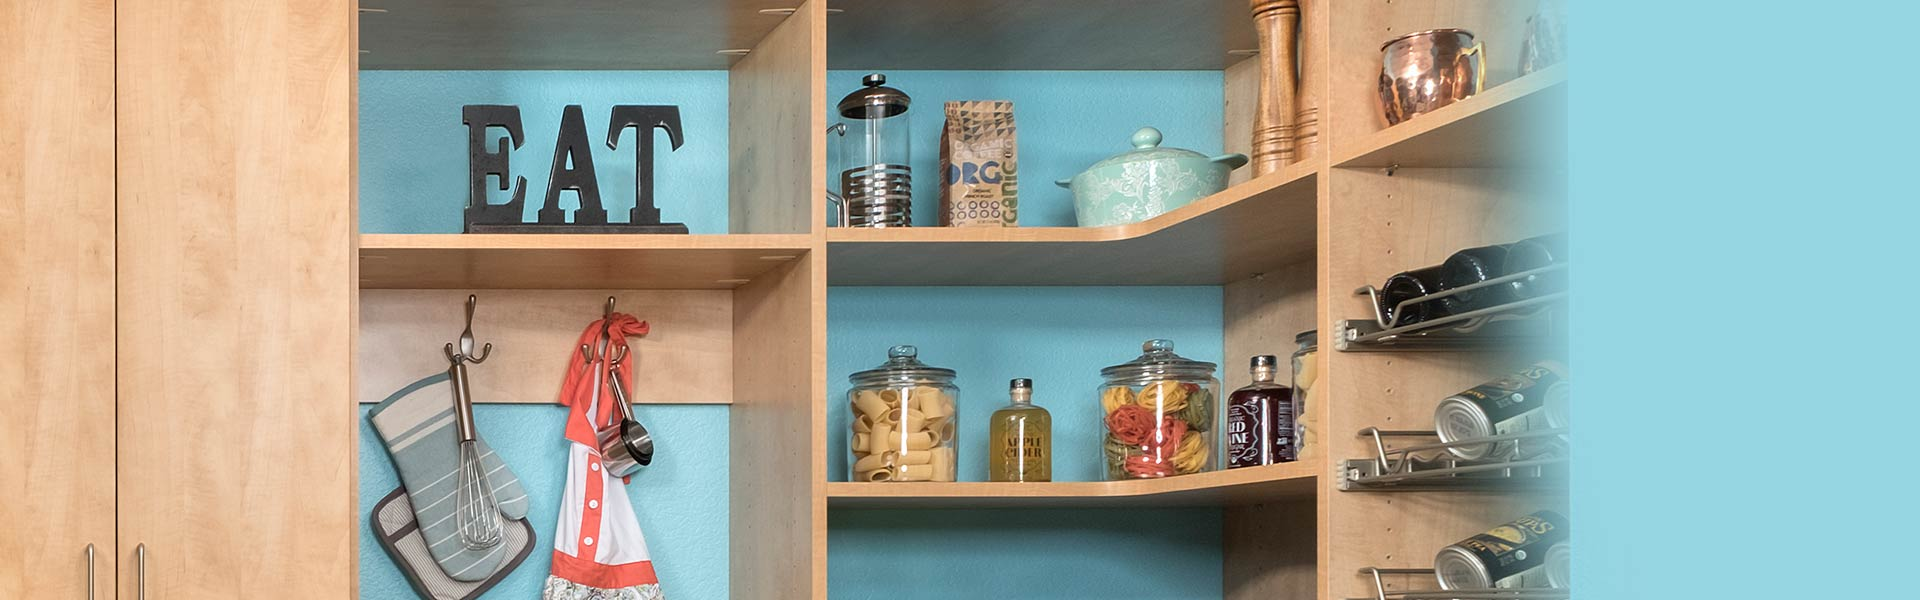 Secret pantry with modern cabinets and adjustable shelves